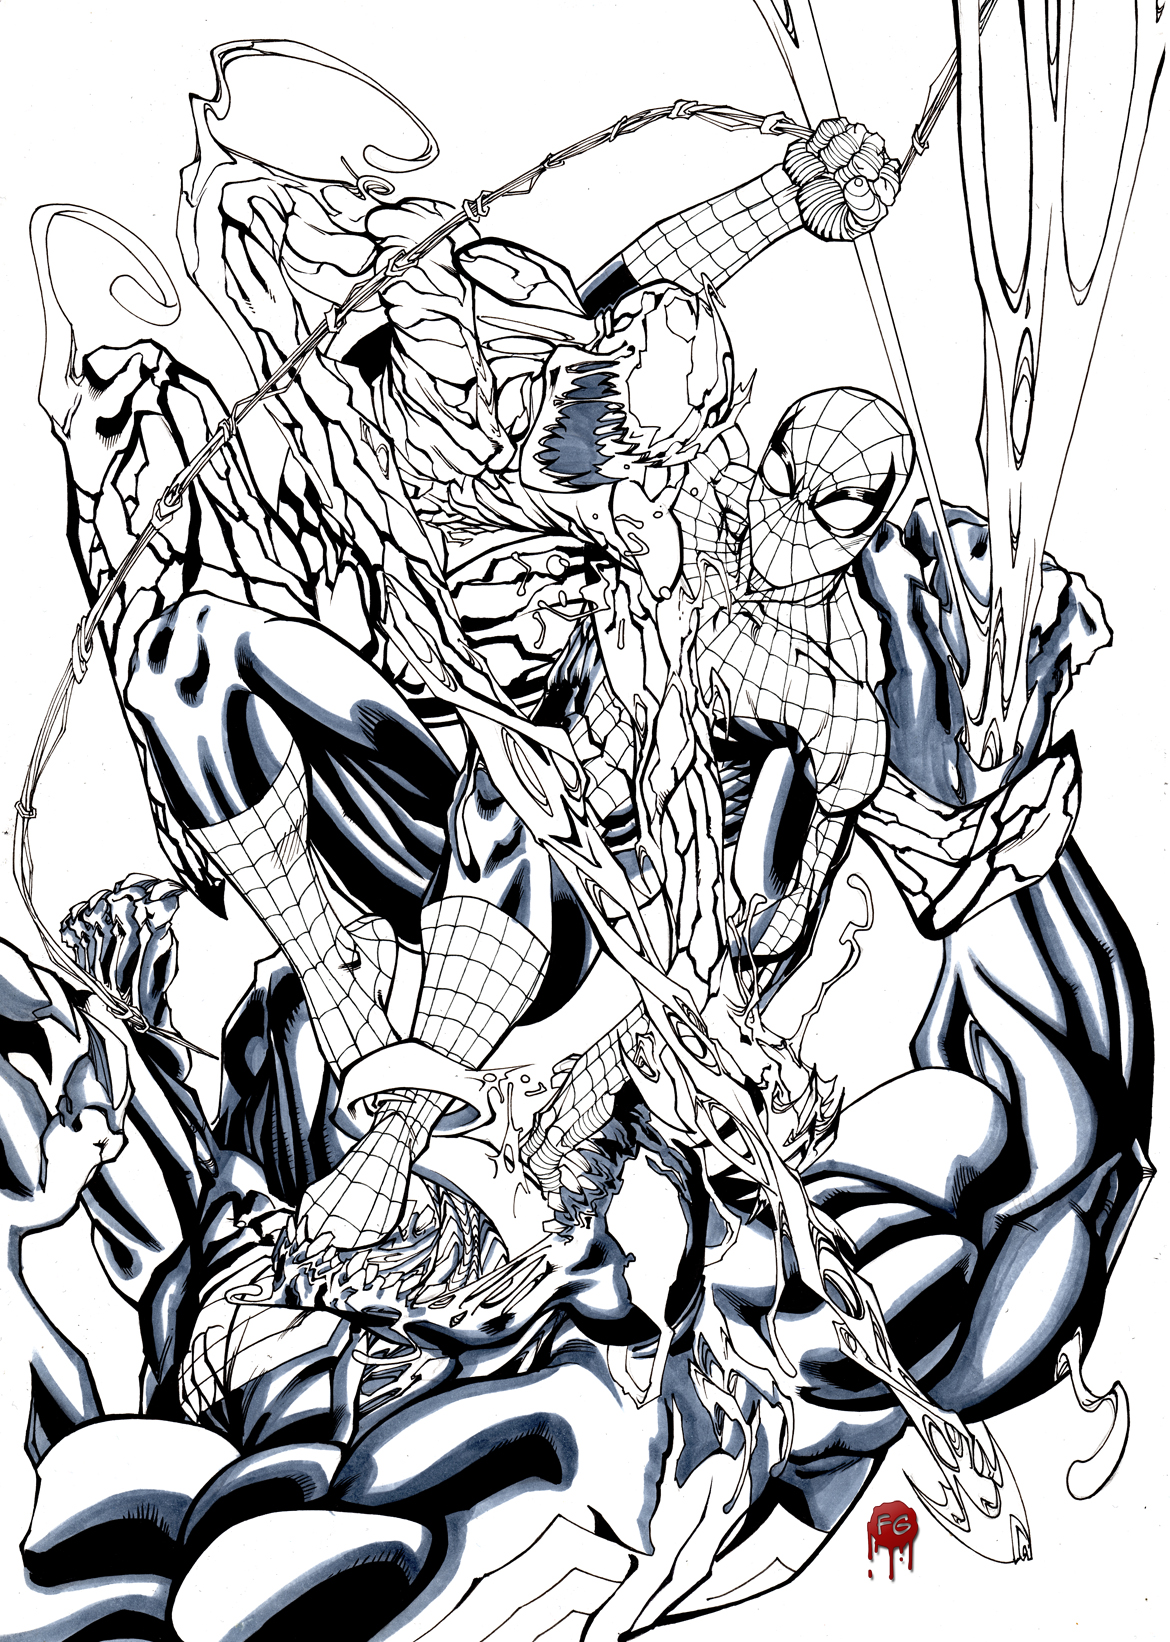 Spiderman Vs Venom And Carnage Preview By Francescogerbino On